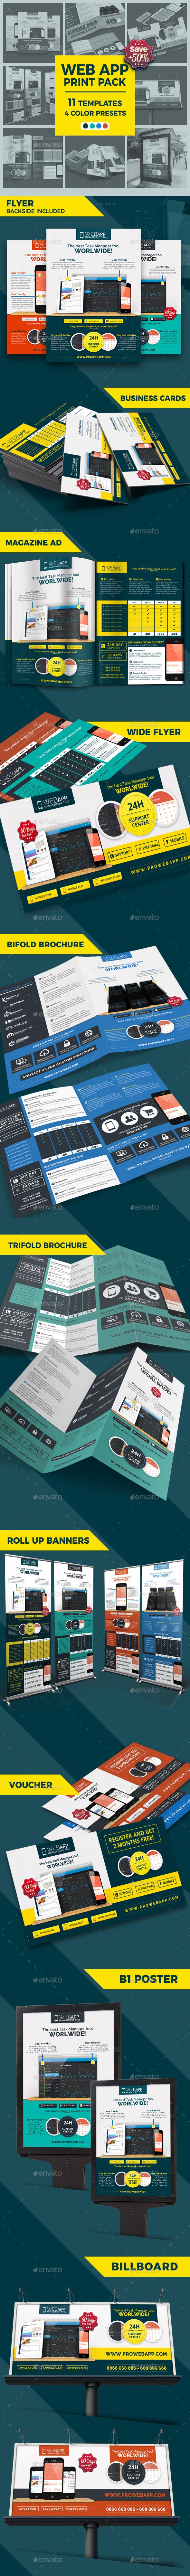 Web App Tech and Hosting Bundle Pack - Stationery Print Templates